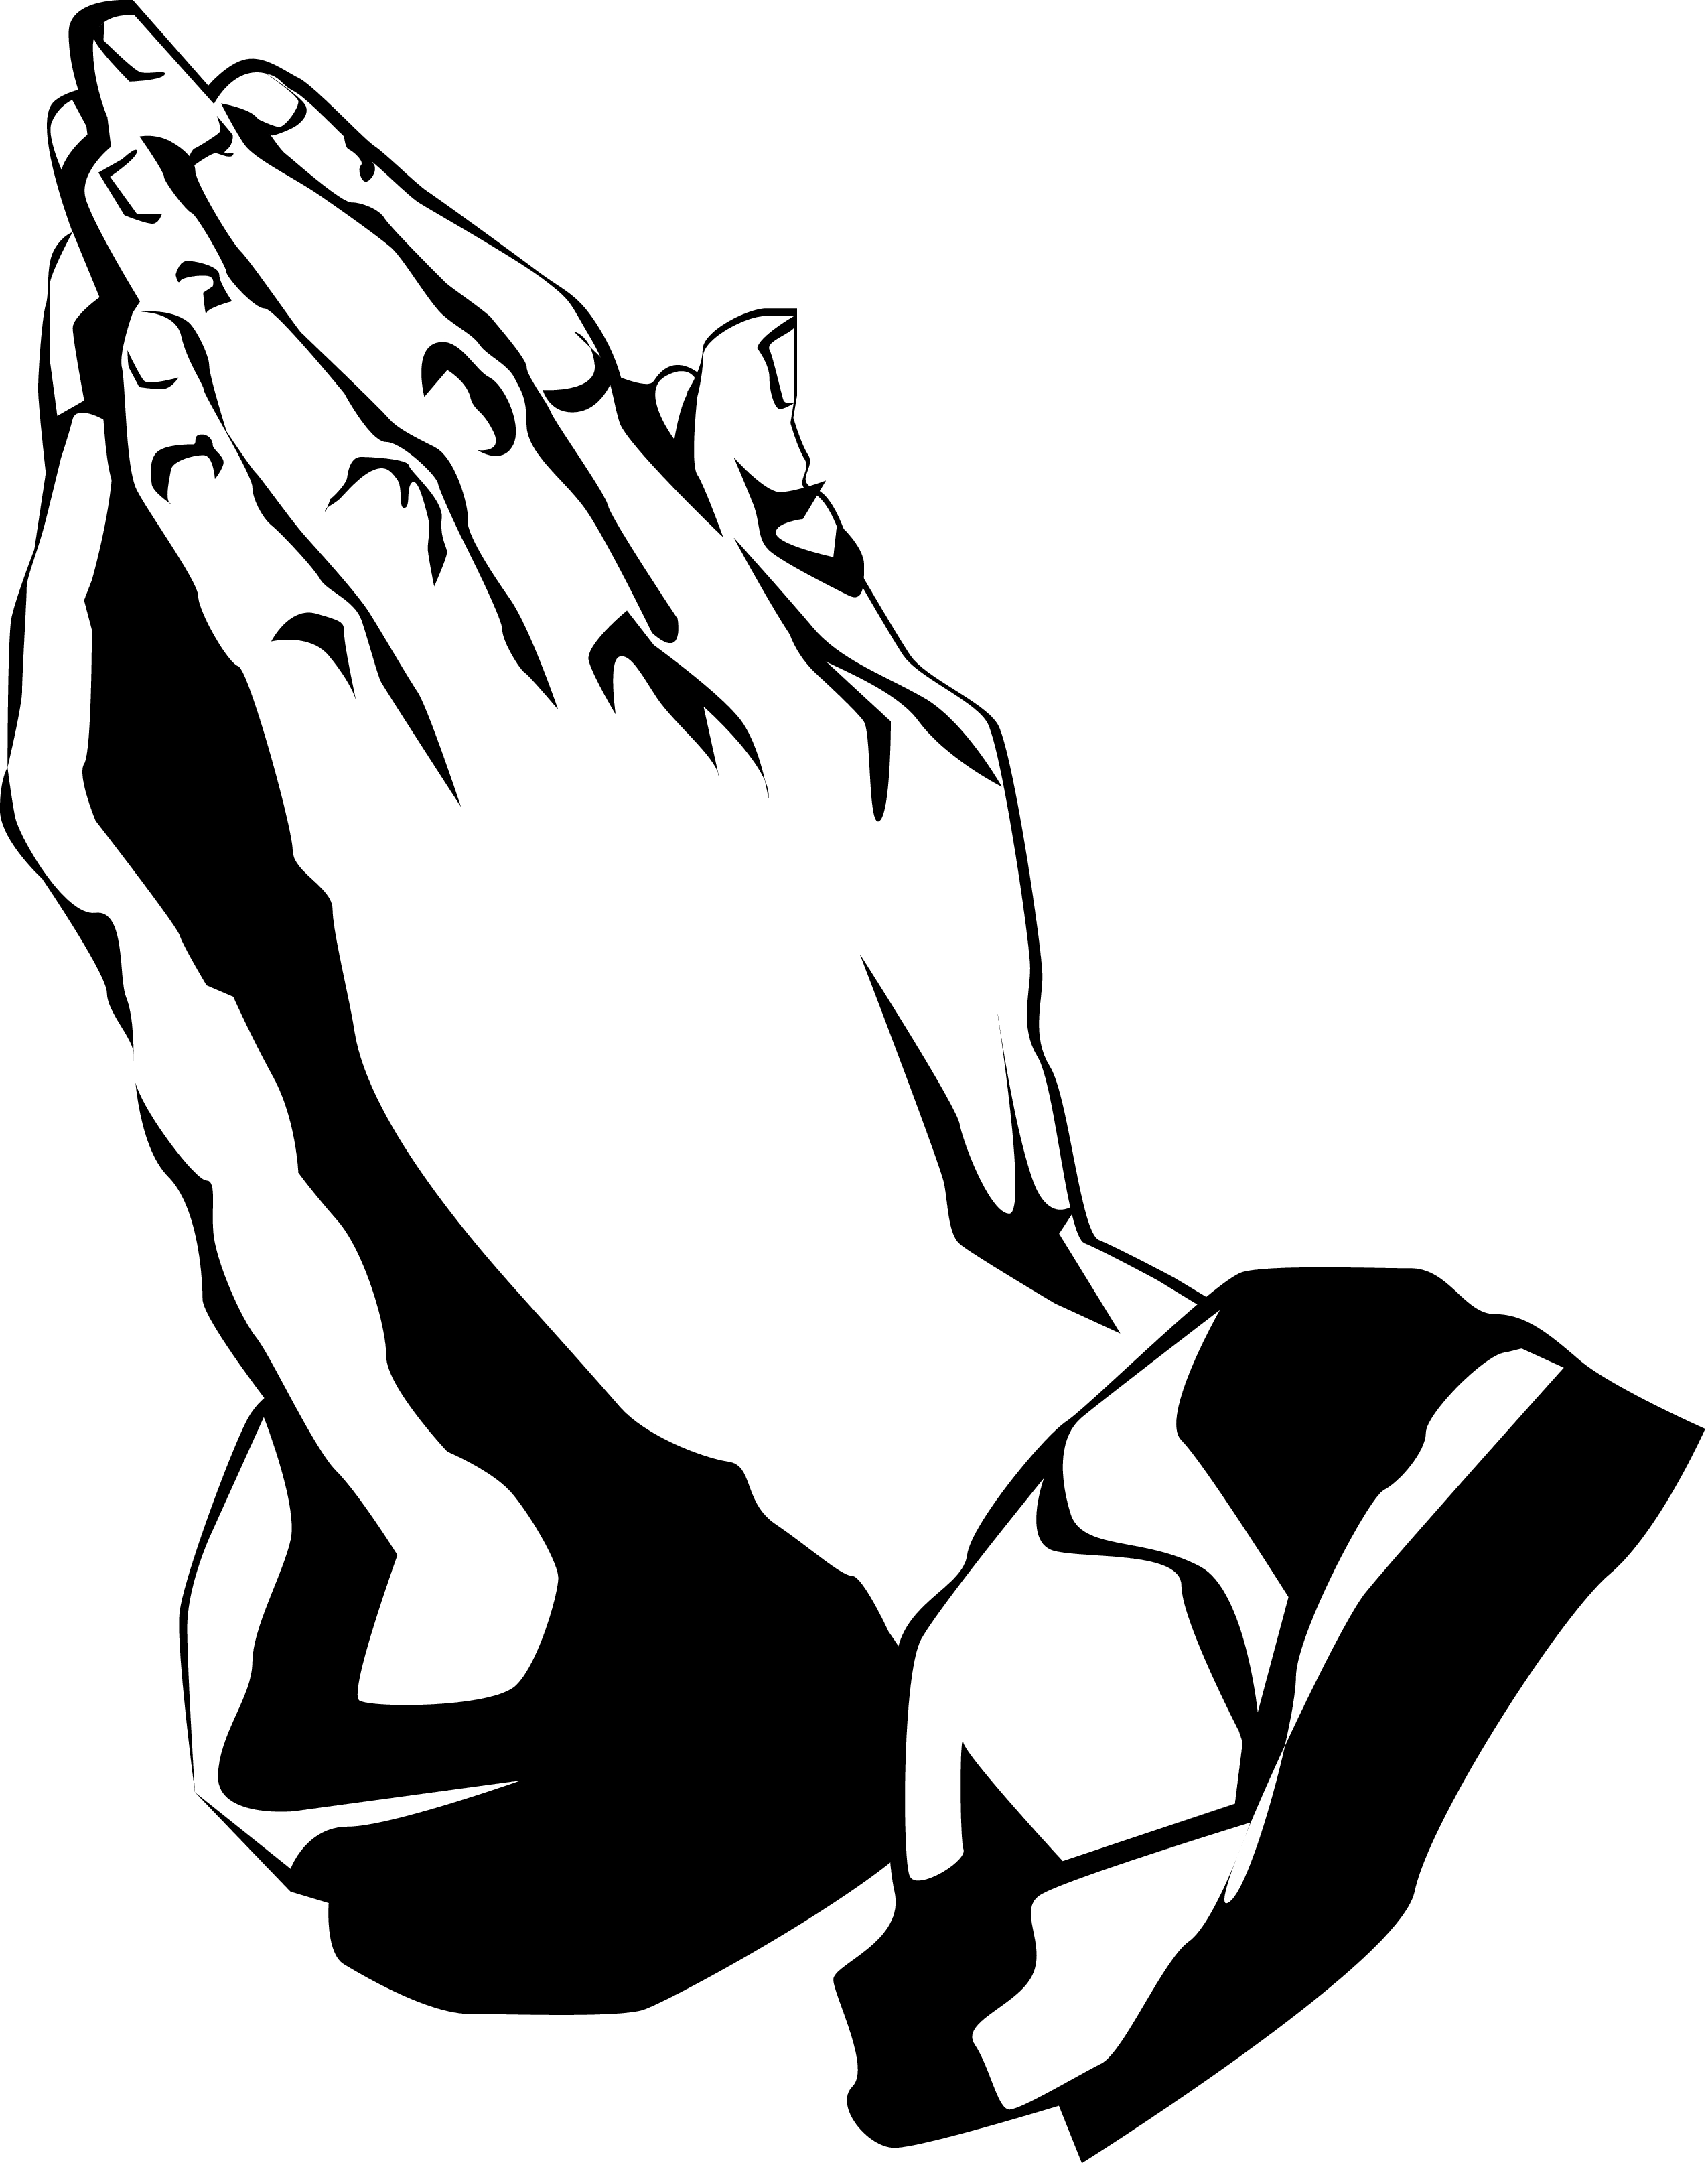 Gods clipart helping hand Of  clipart clipart Collection